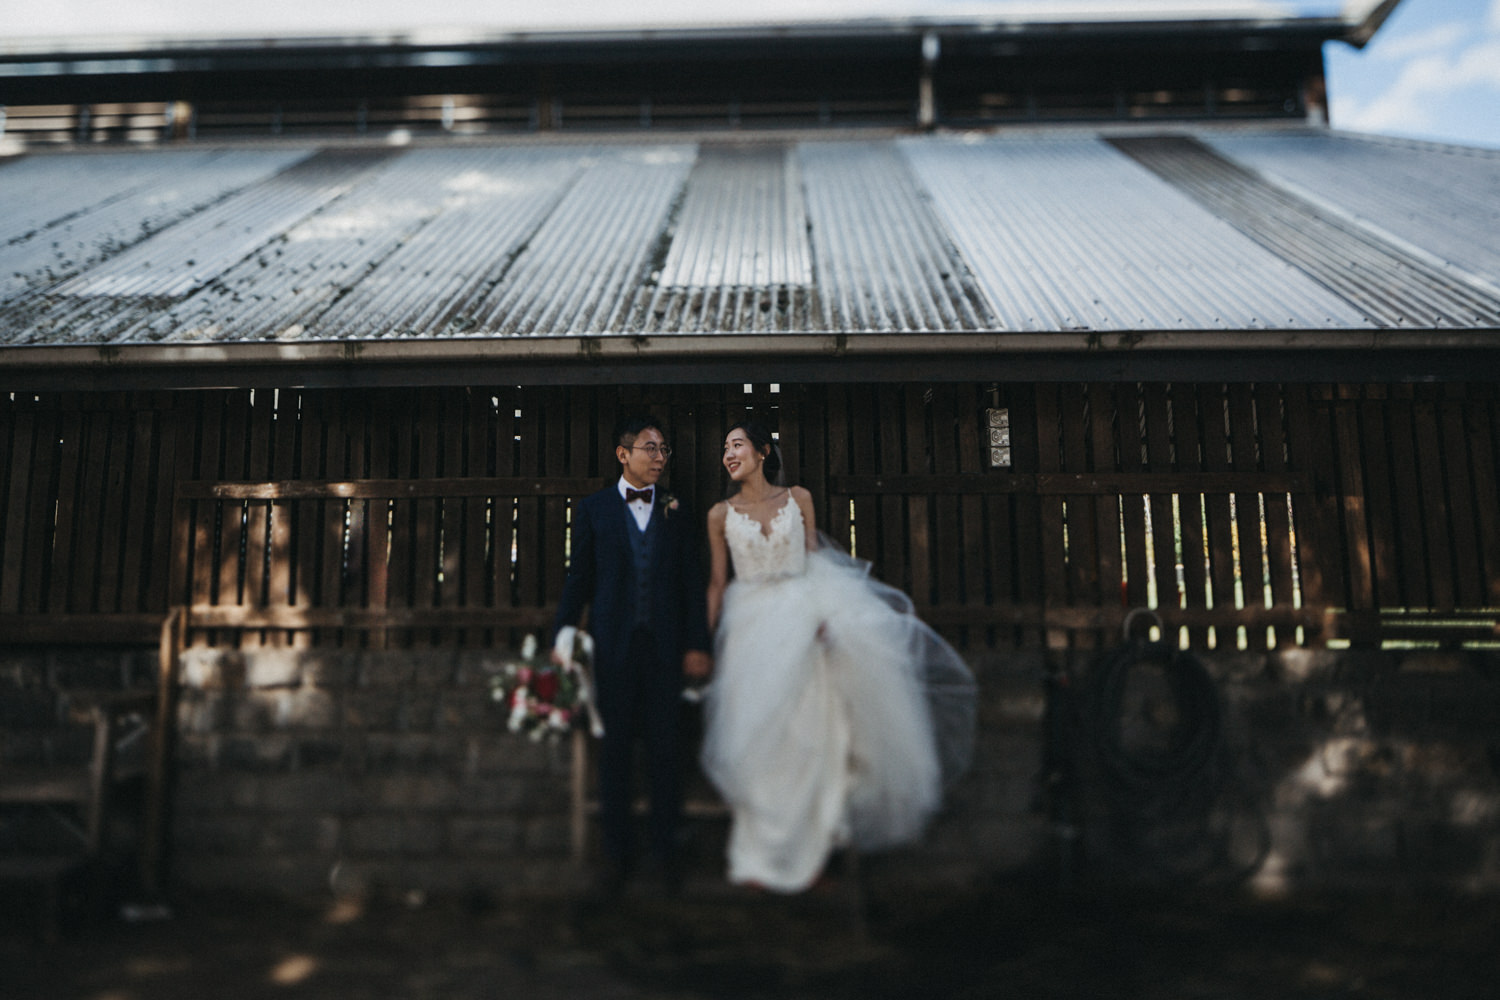 Melbourne_Wedding_Collingwood_Childrens_Farm_Anna_Taylor_063.jpg